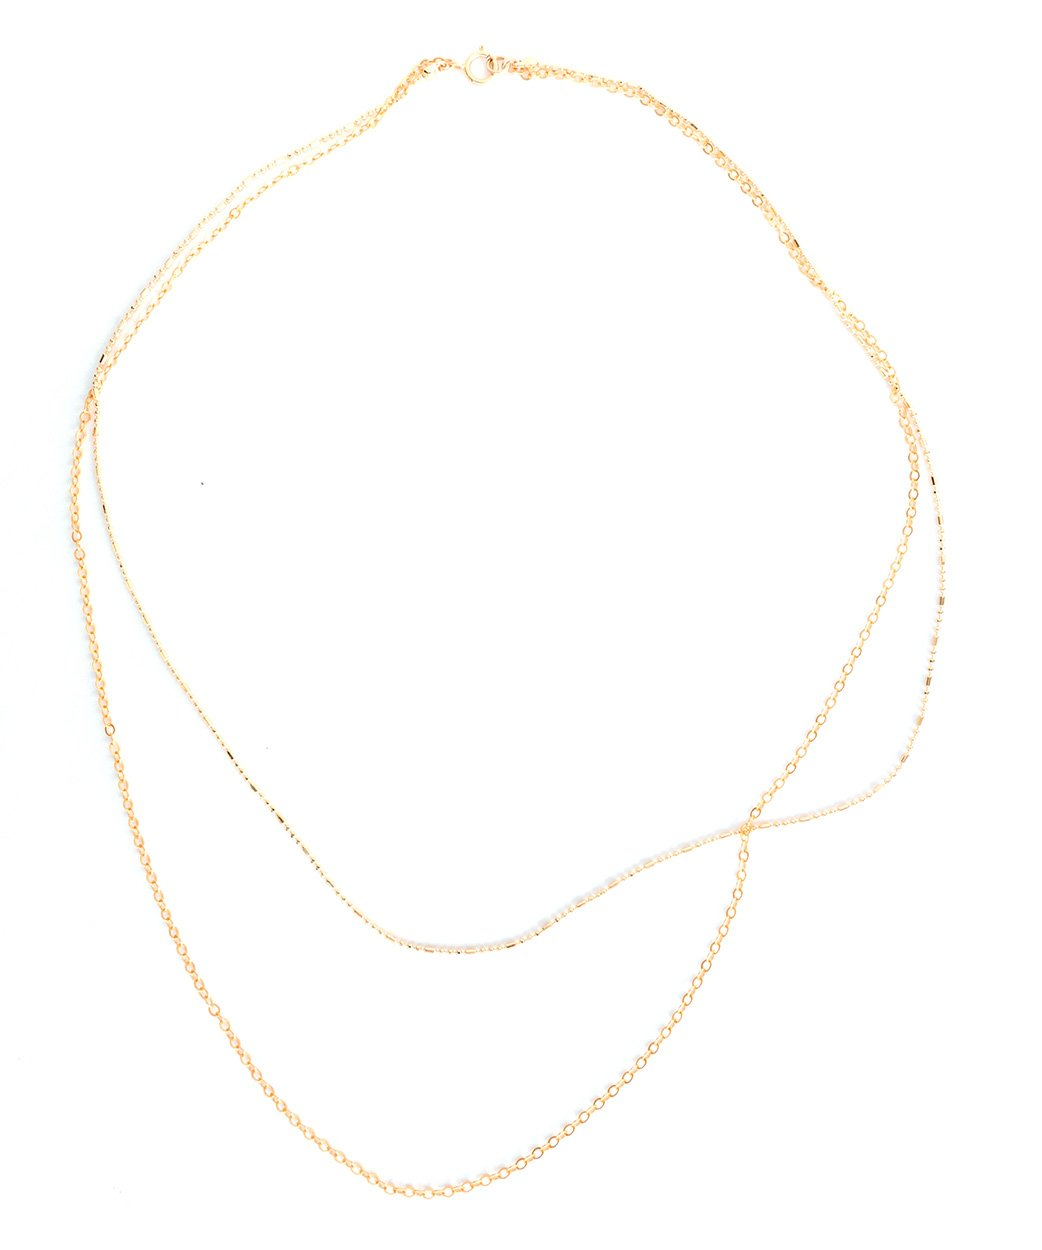 N Josie Layering Necklace Duo Gold Oval Link Sparkle Ball Chain 2